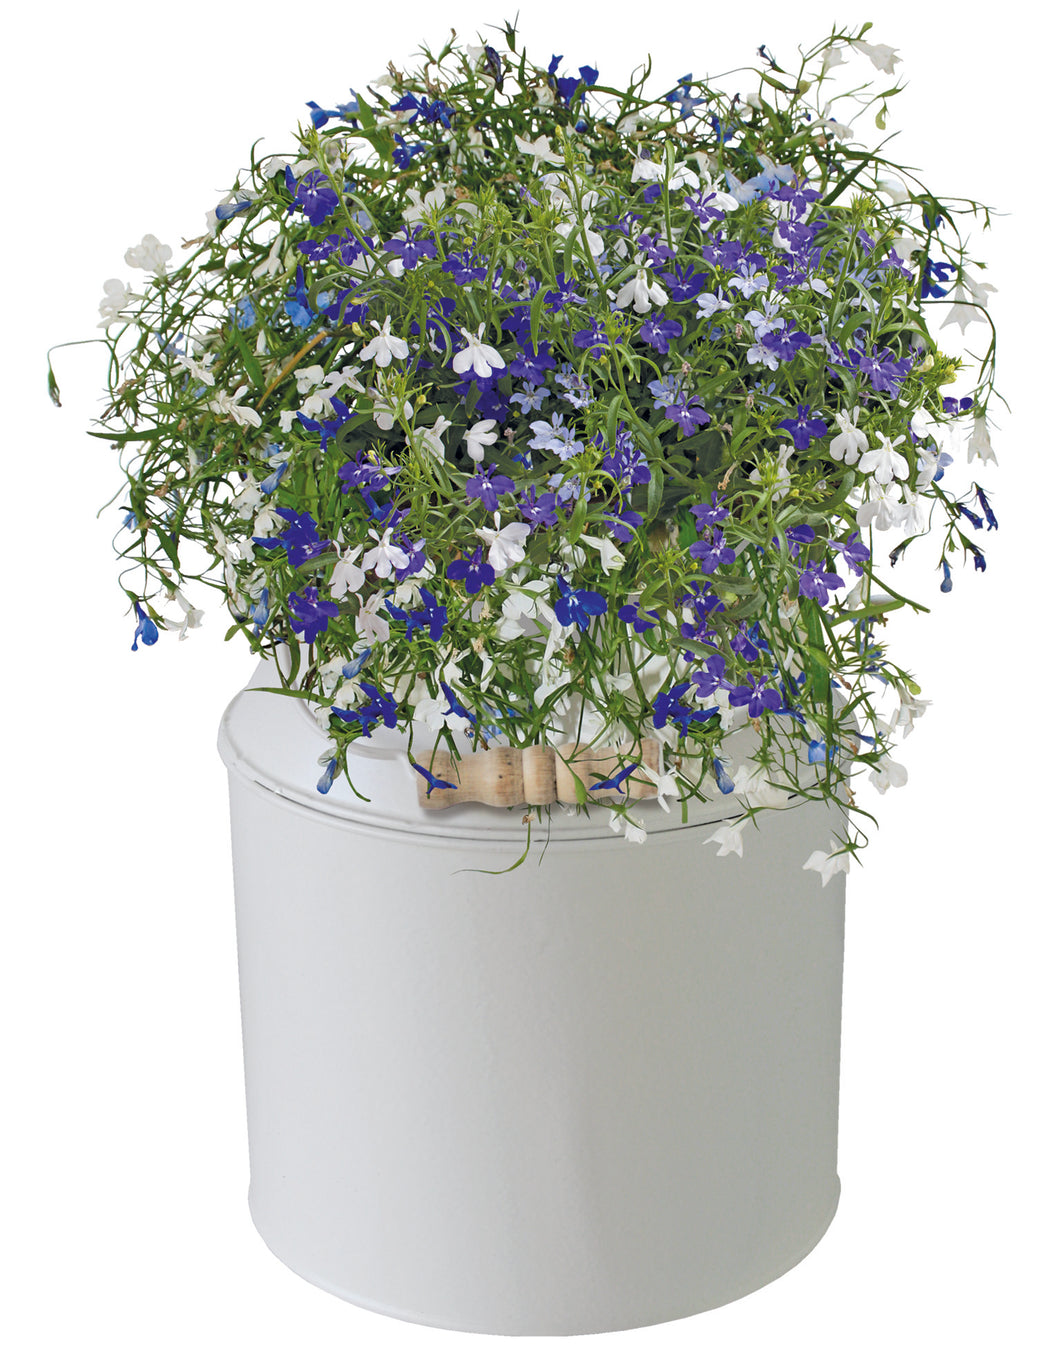 BEES® Lobelia Milk Churn Planter